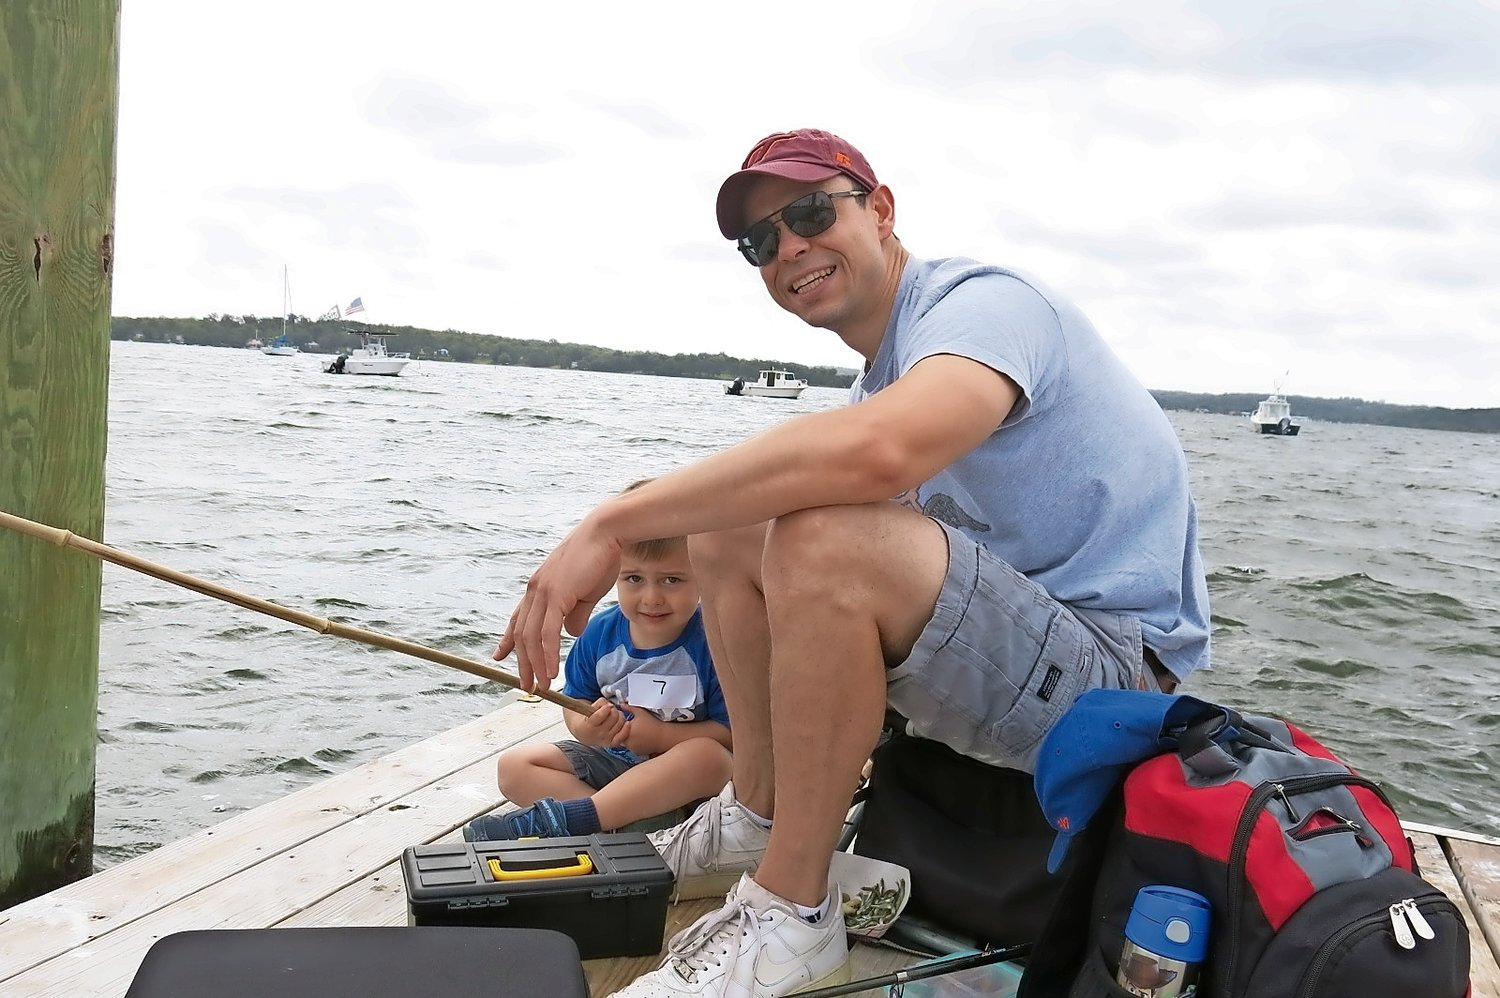 Jim Causarano brought his son Dominic to the end of the dock to fish.